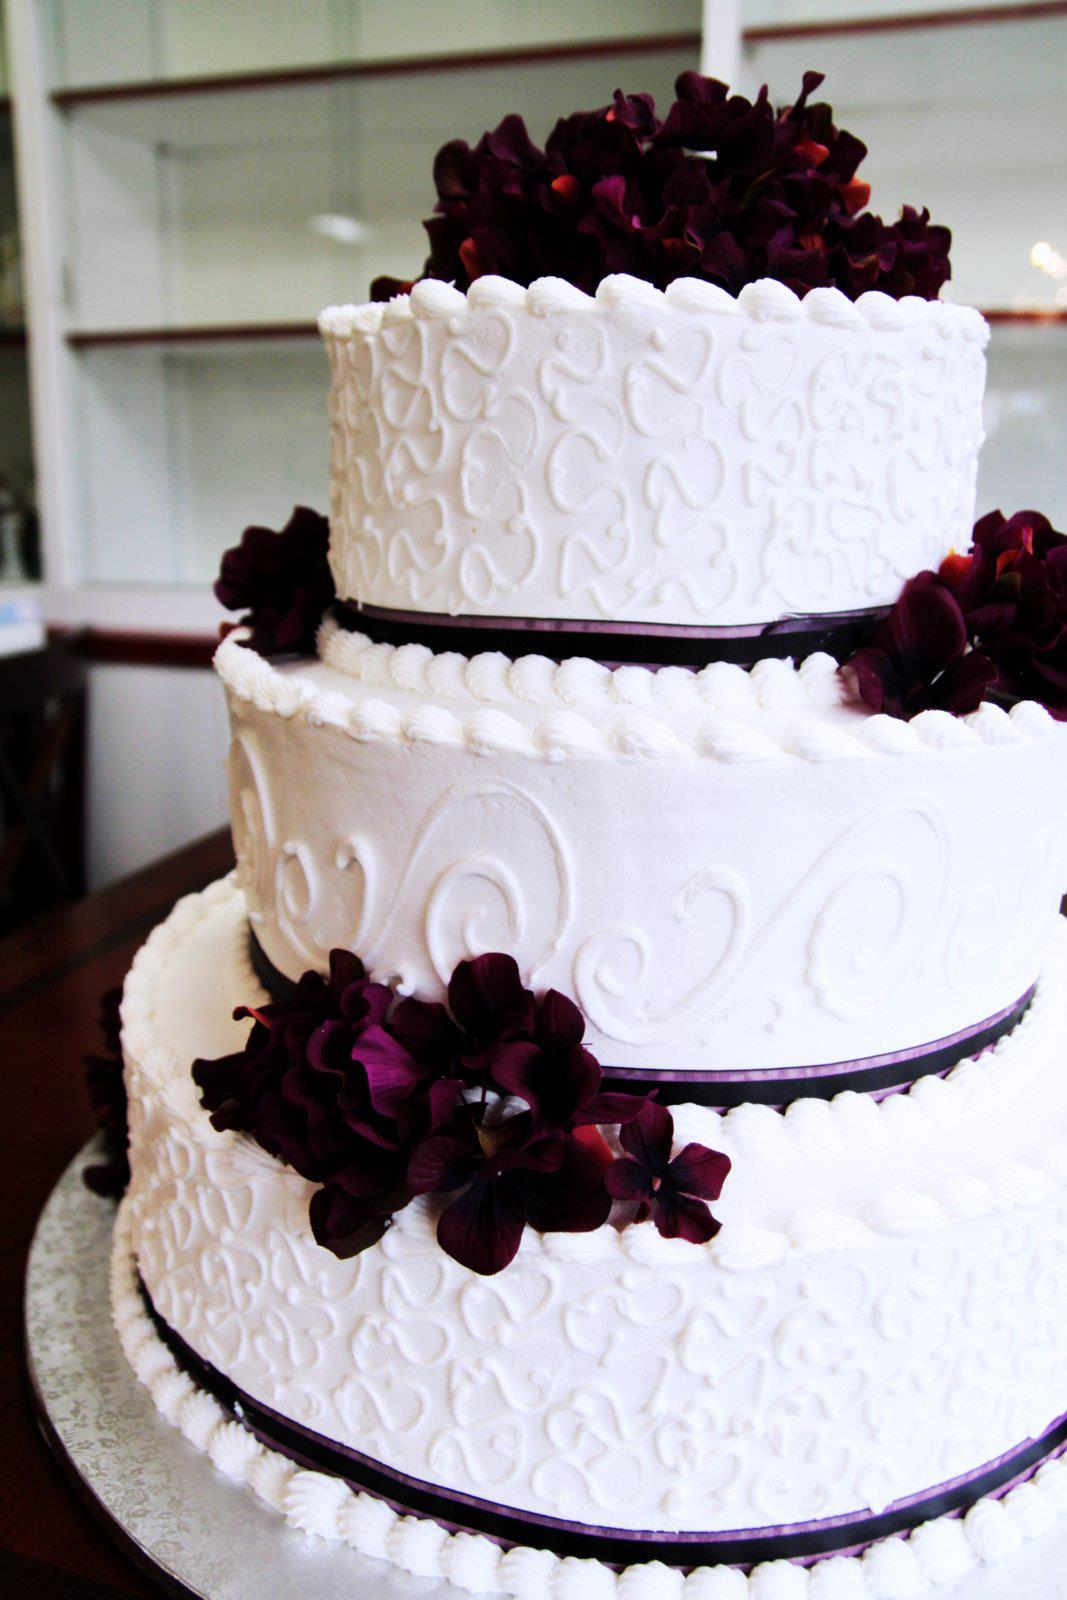 Wedding Cakes Colozzas Bakery